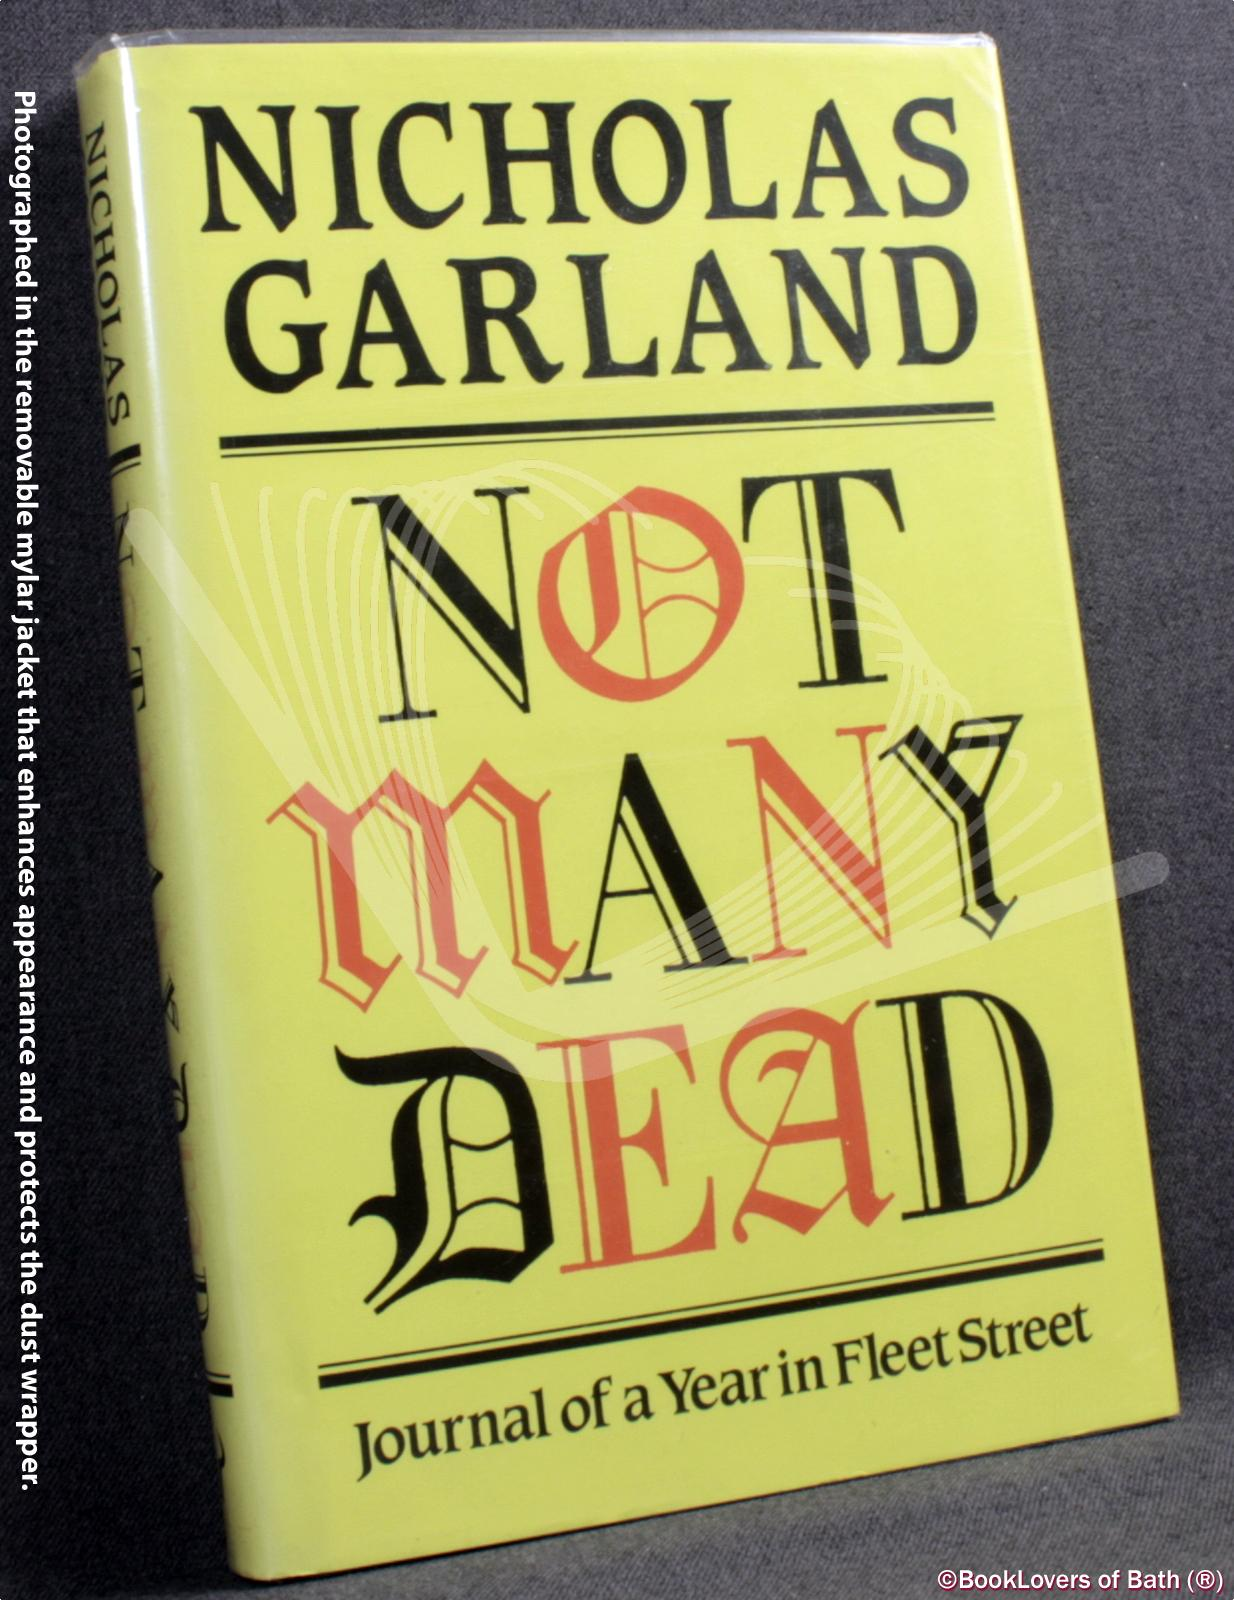 Not Many Dead: Journal of a Year in Fleet Street - Nicholas Garland